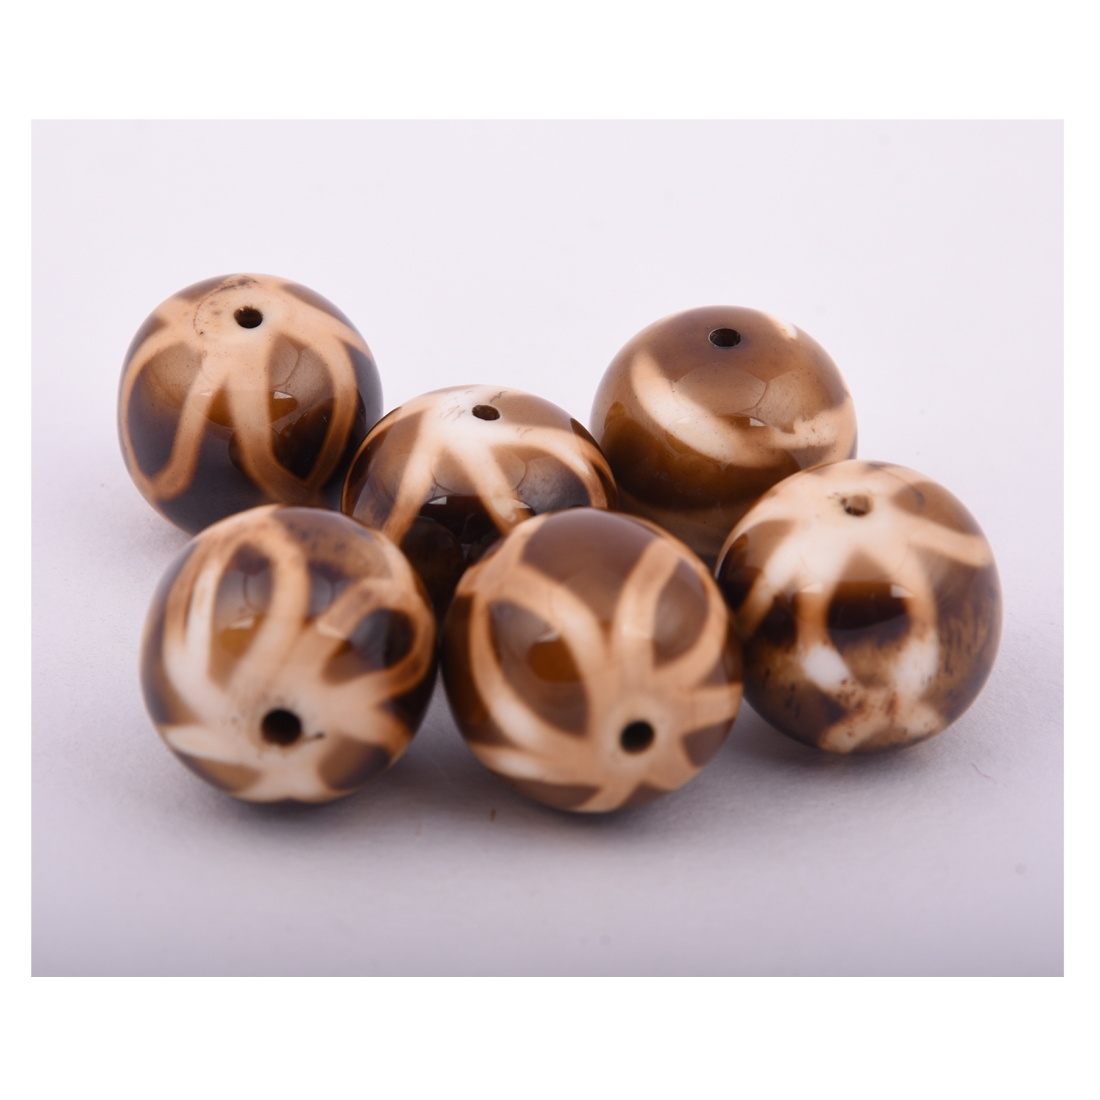 Beads India 1700038 Handcrafted Resin Beads/Discounts Above 500 pcs